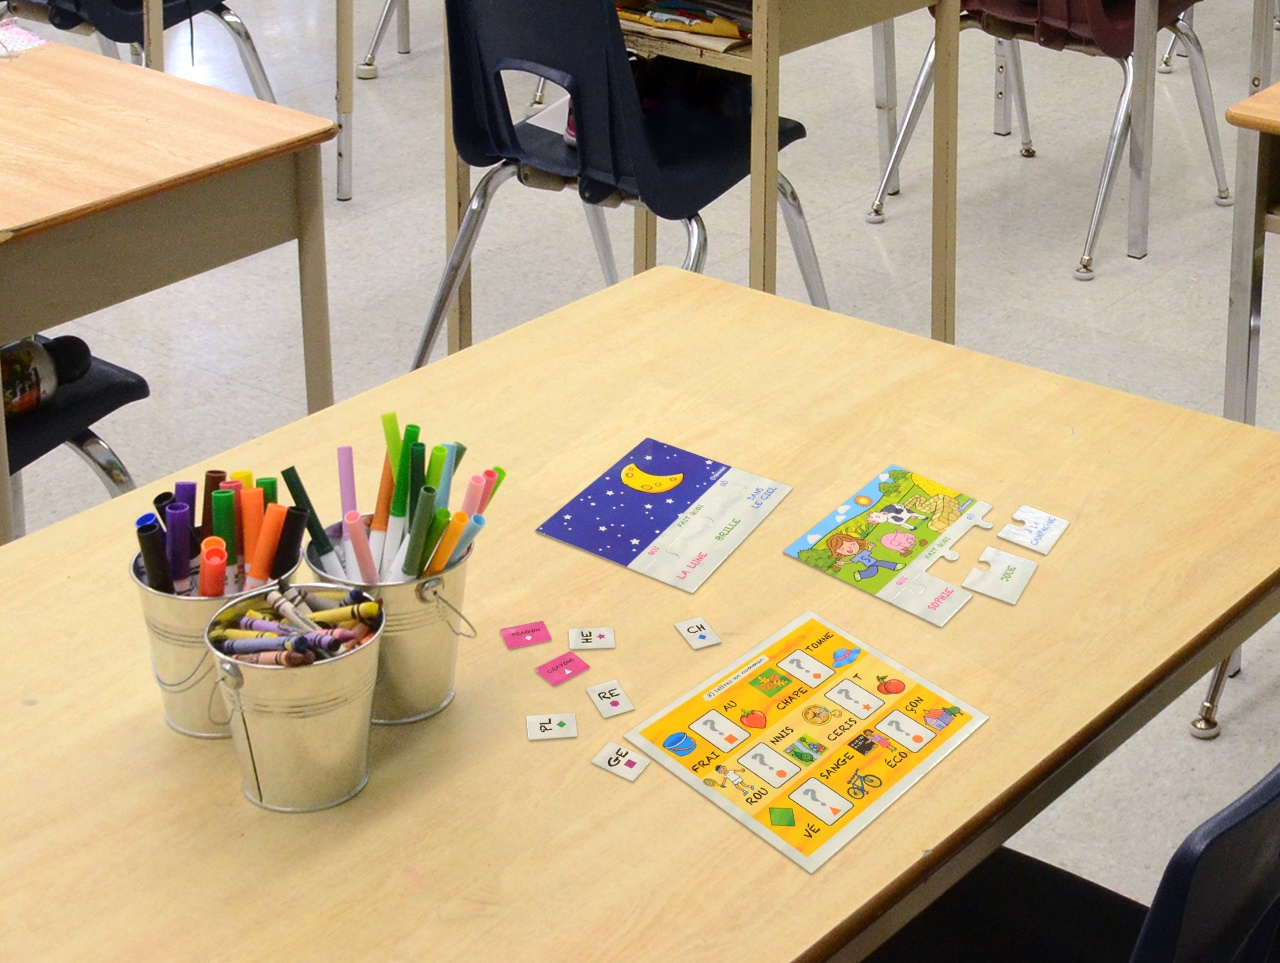 Our-Most-Popular-French-Games-That-Teachers-Love-In-Their-Classrooms-1